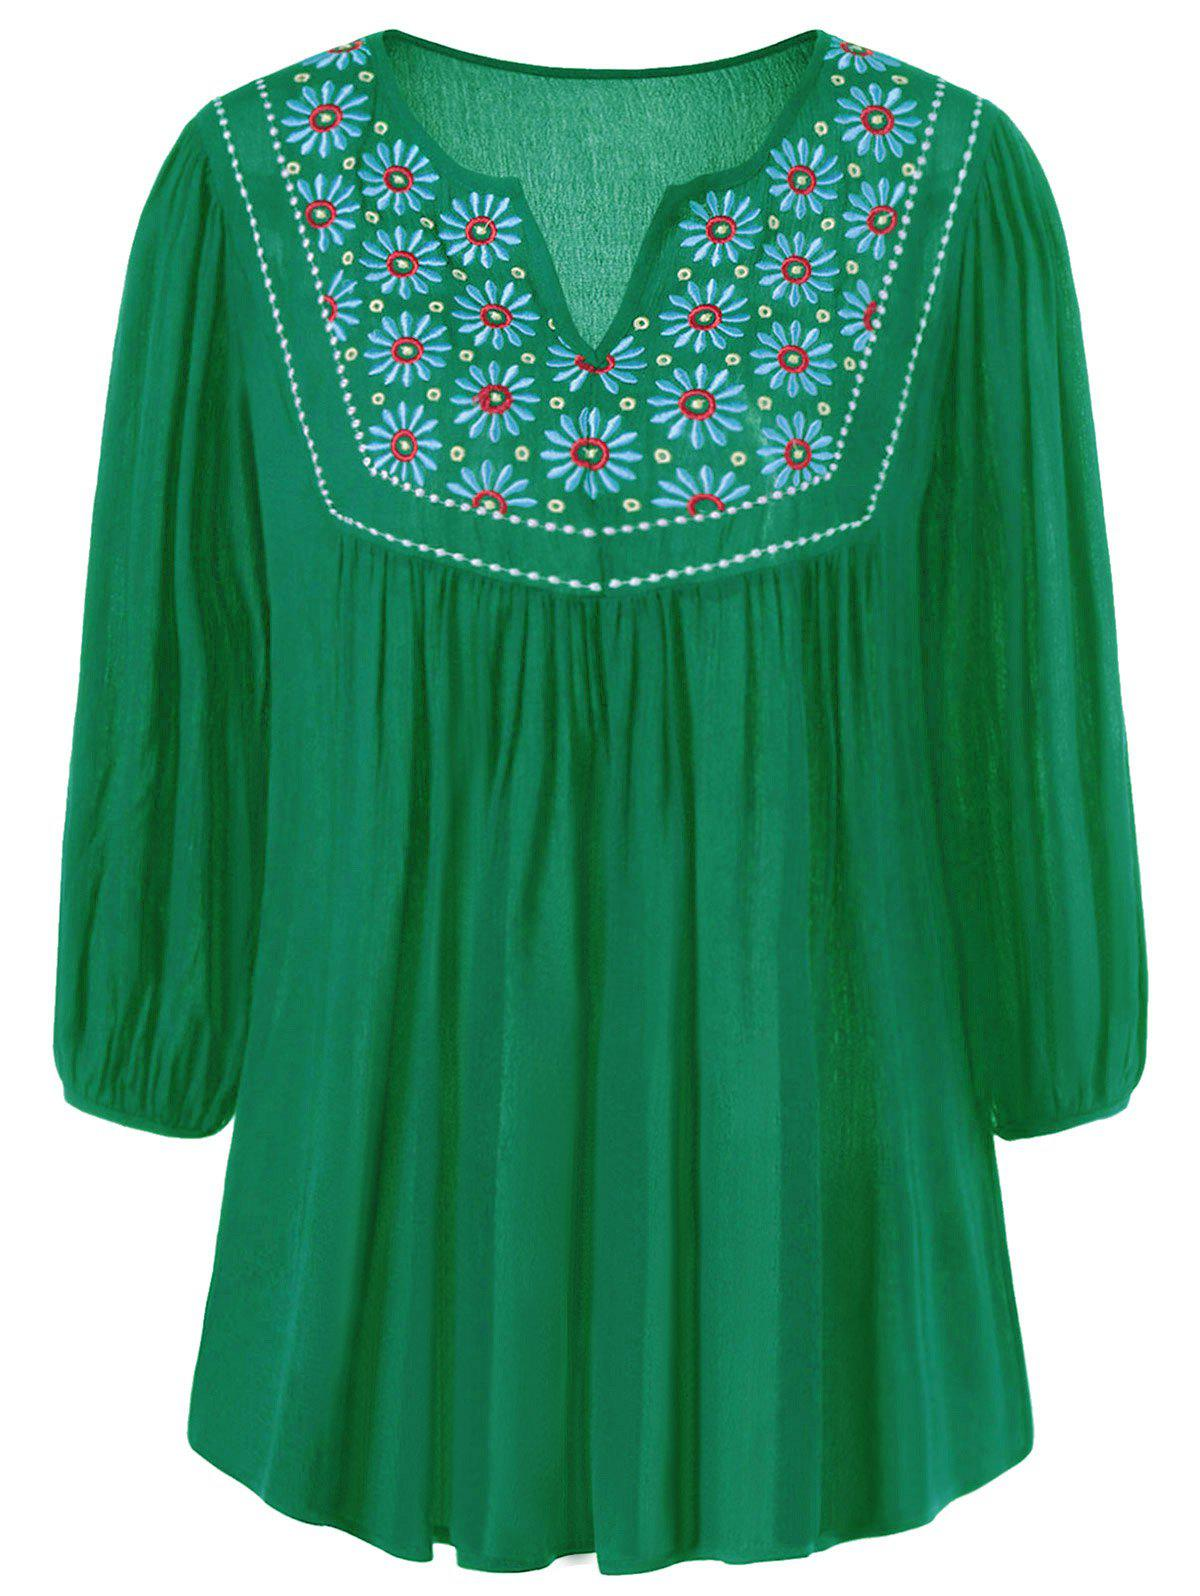 Shop Floral Embroidered Maxican Peasant Blouse